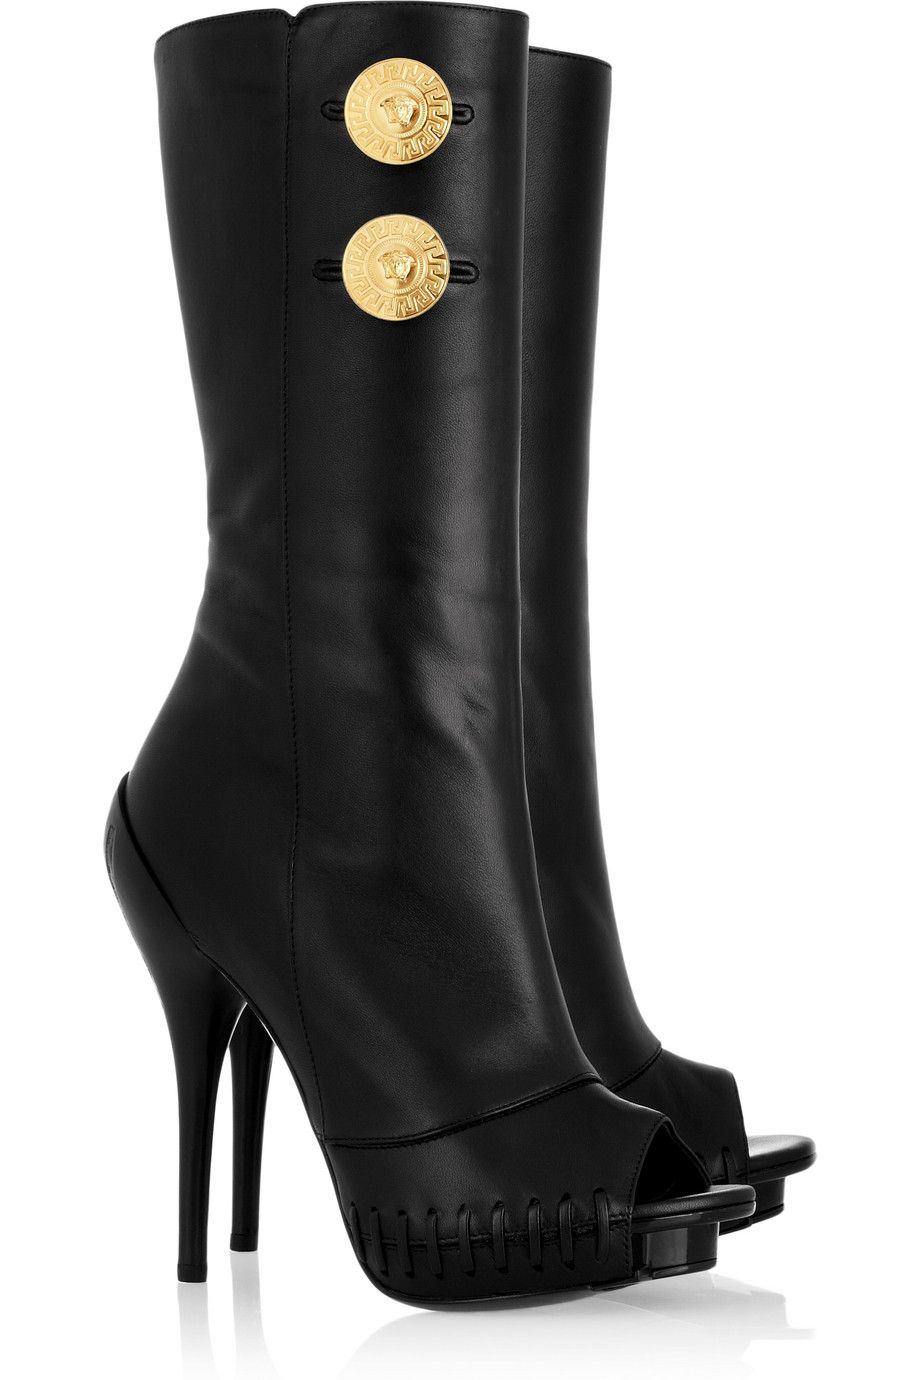 Versace Jeans Black Nappa Leather Ankle Boots